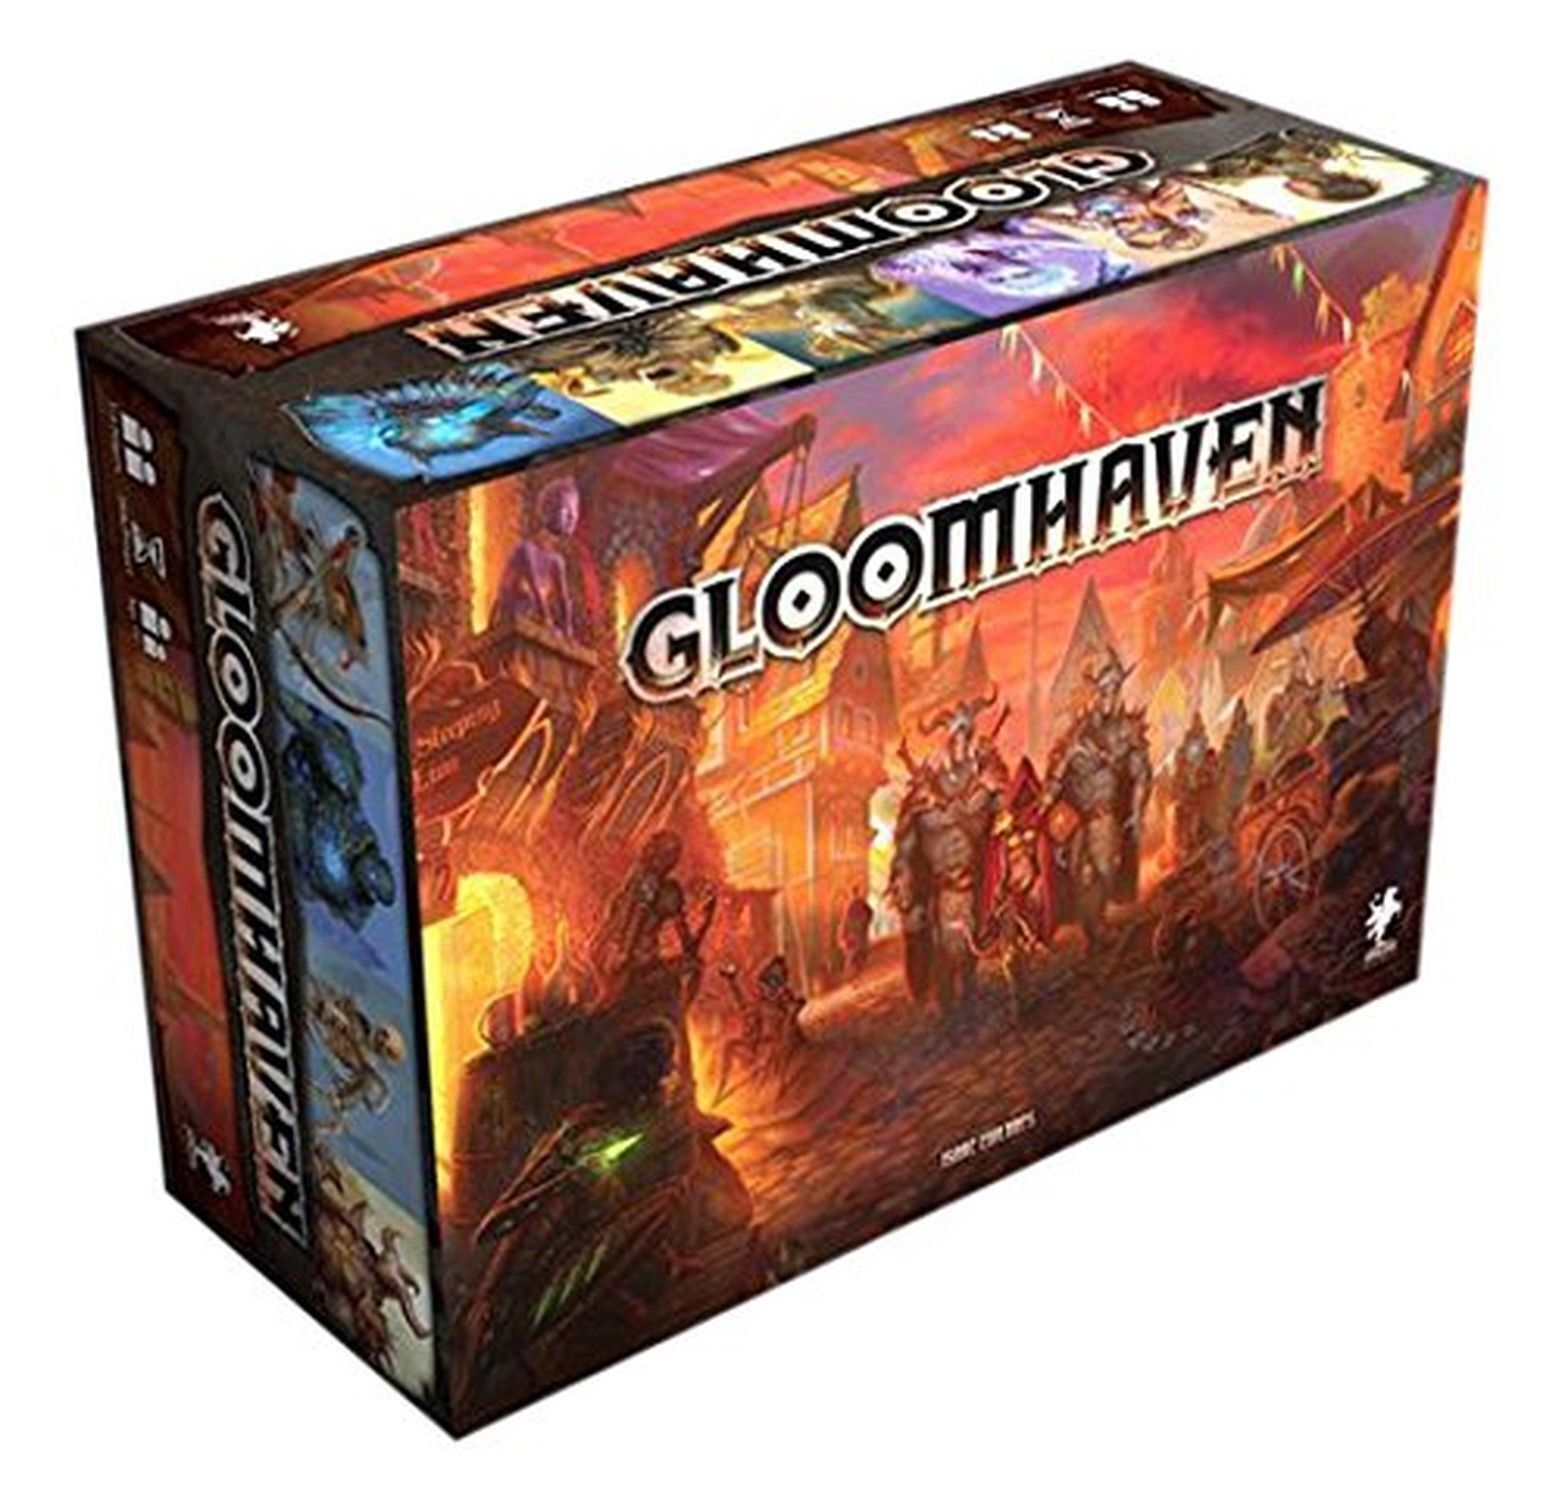 Gloomhaven Board Game - Brand New Factory Sealed - Pre-Sale - Next Shipment